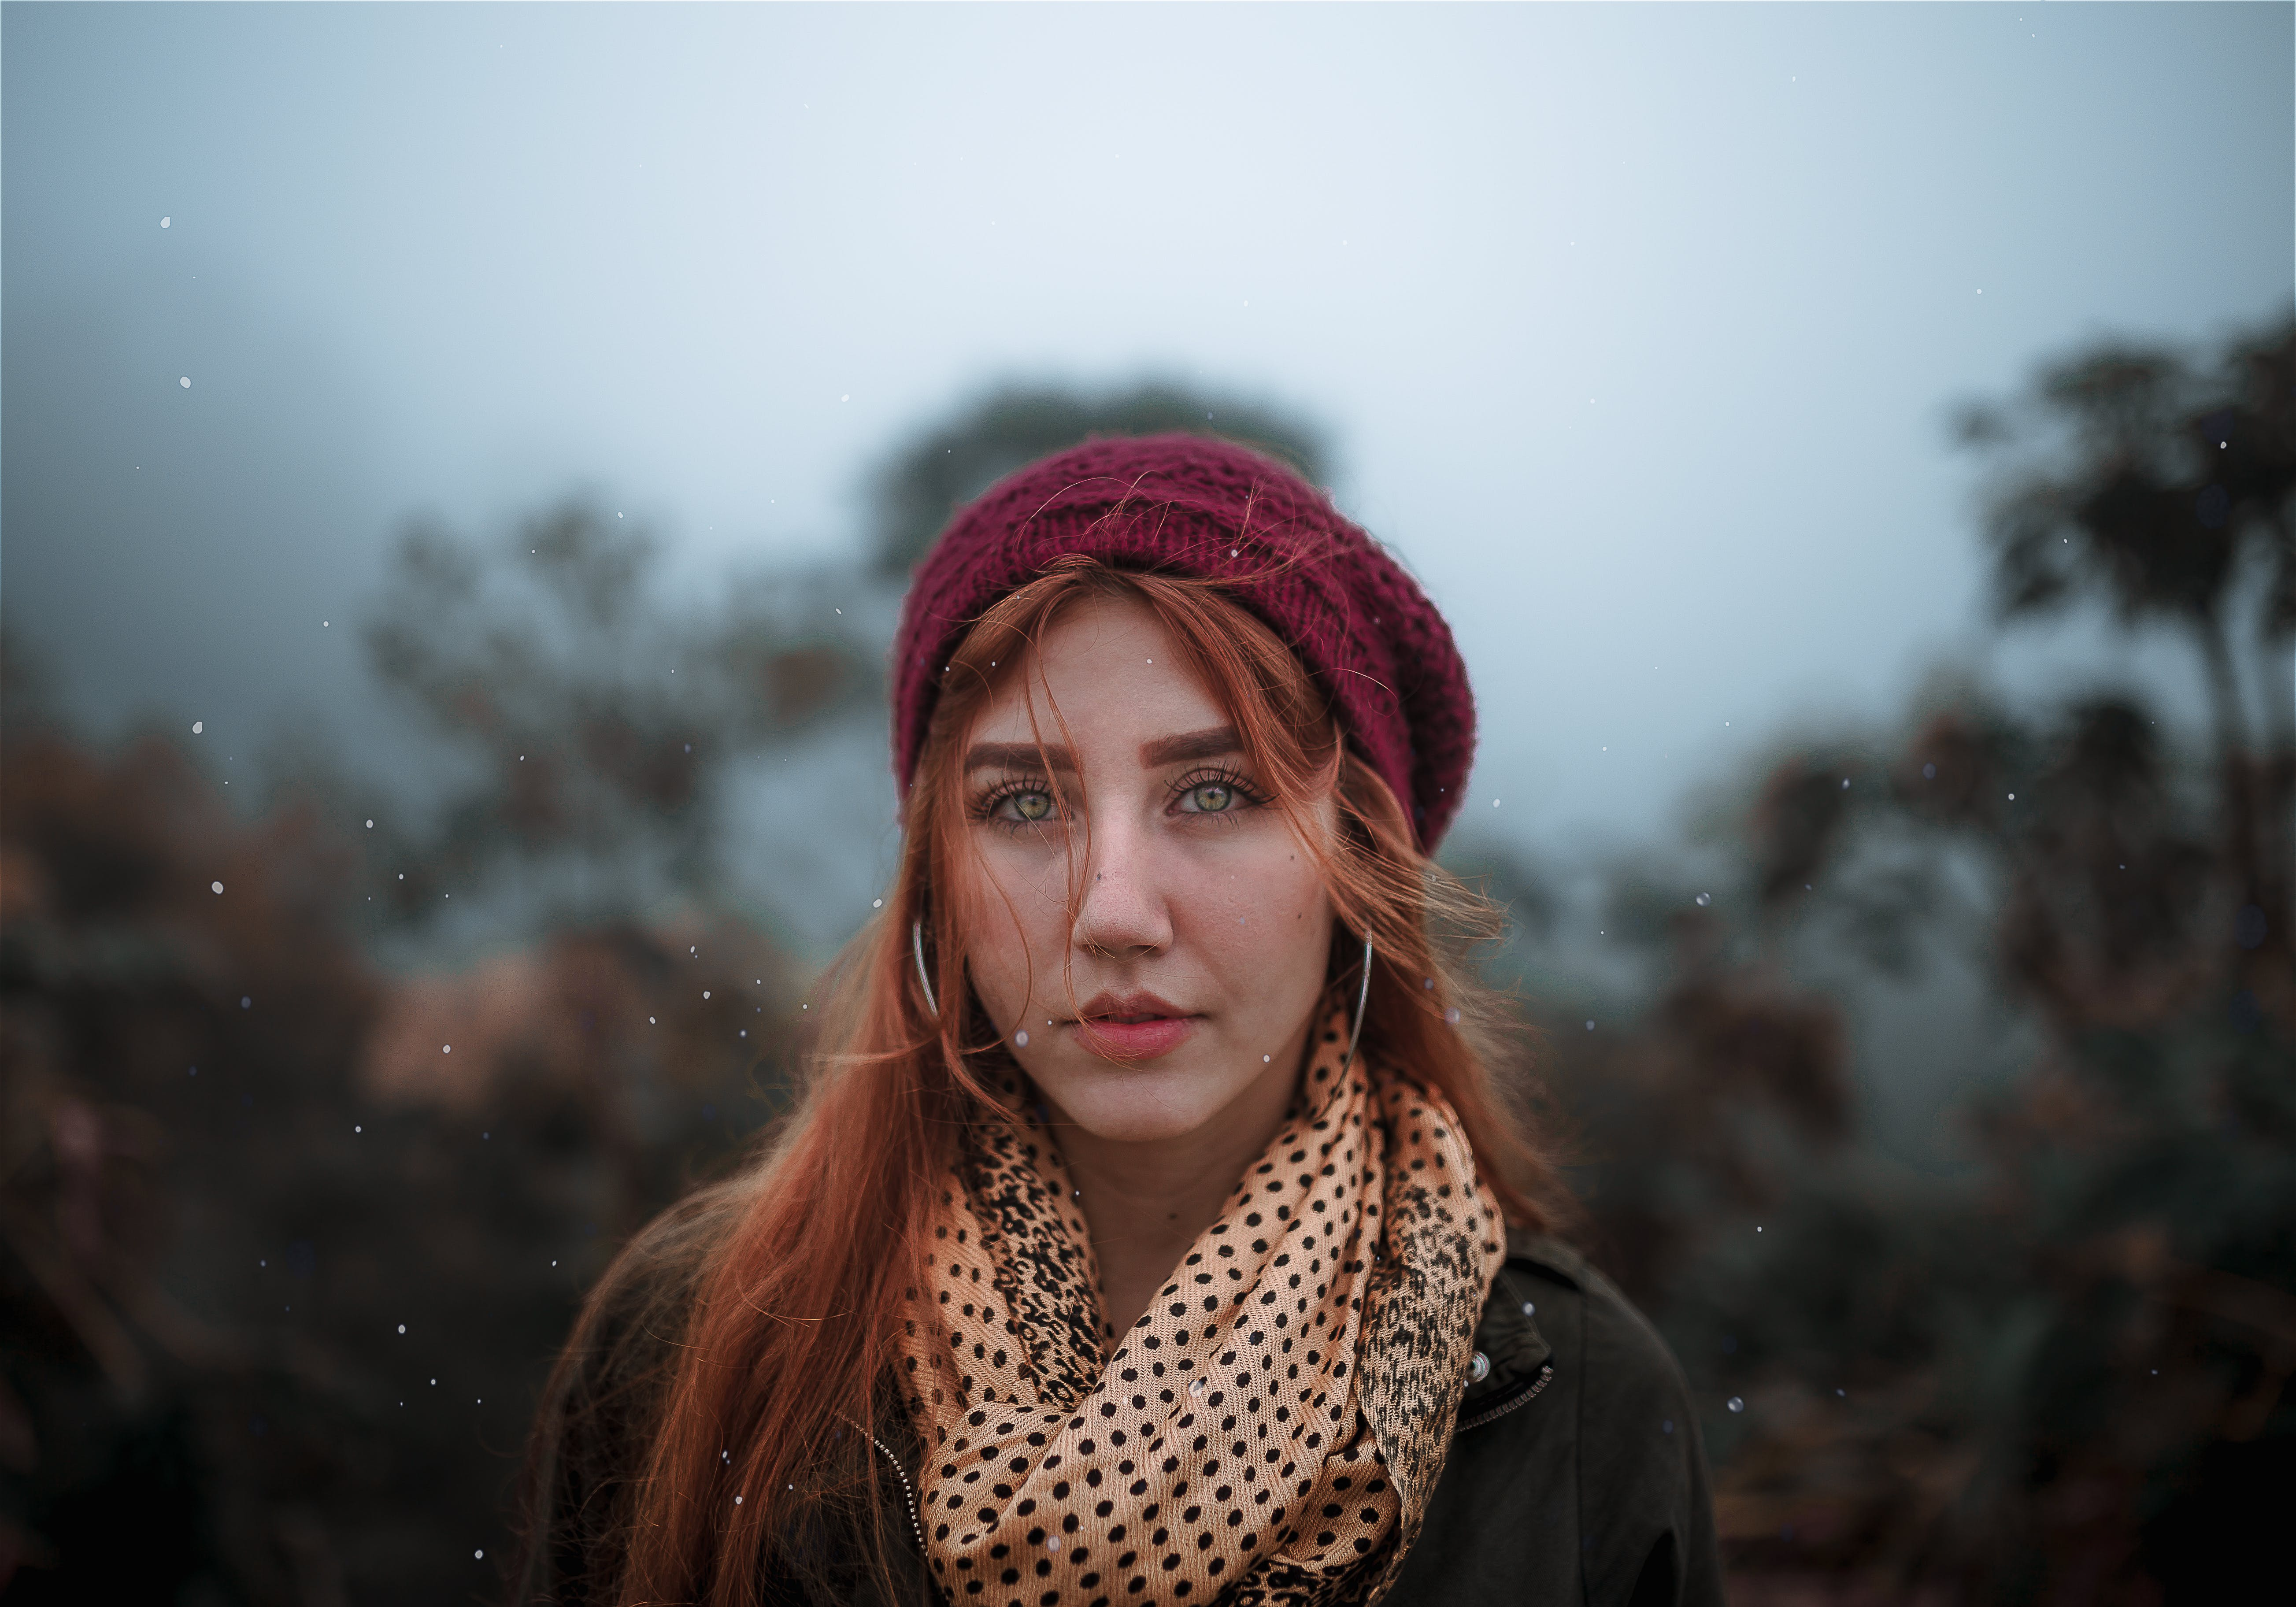 Selective Focus Photo of Woman Wearing Red Beanie